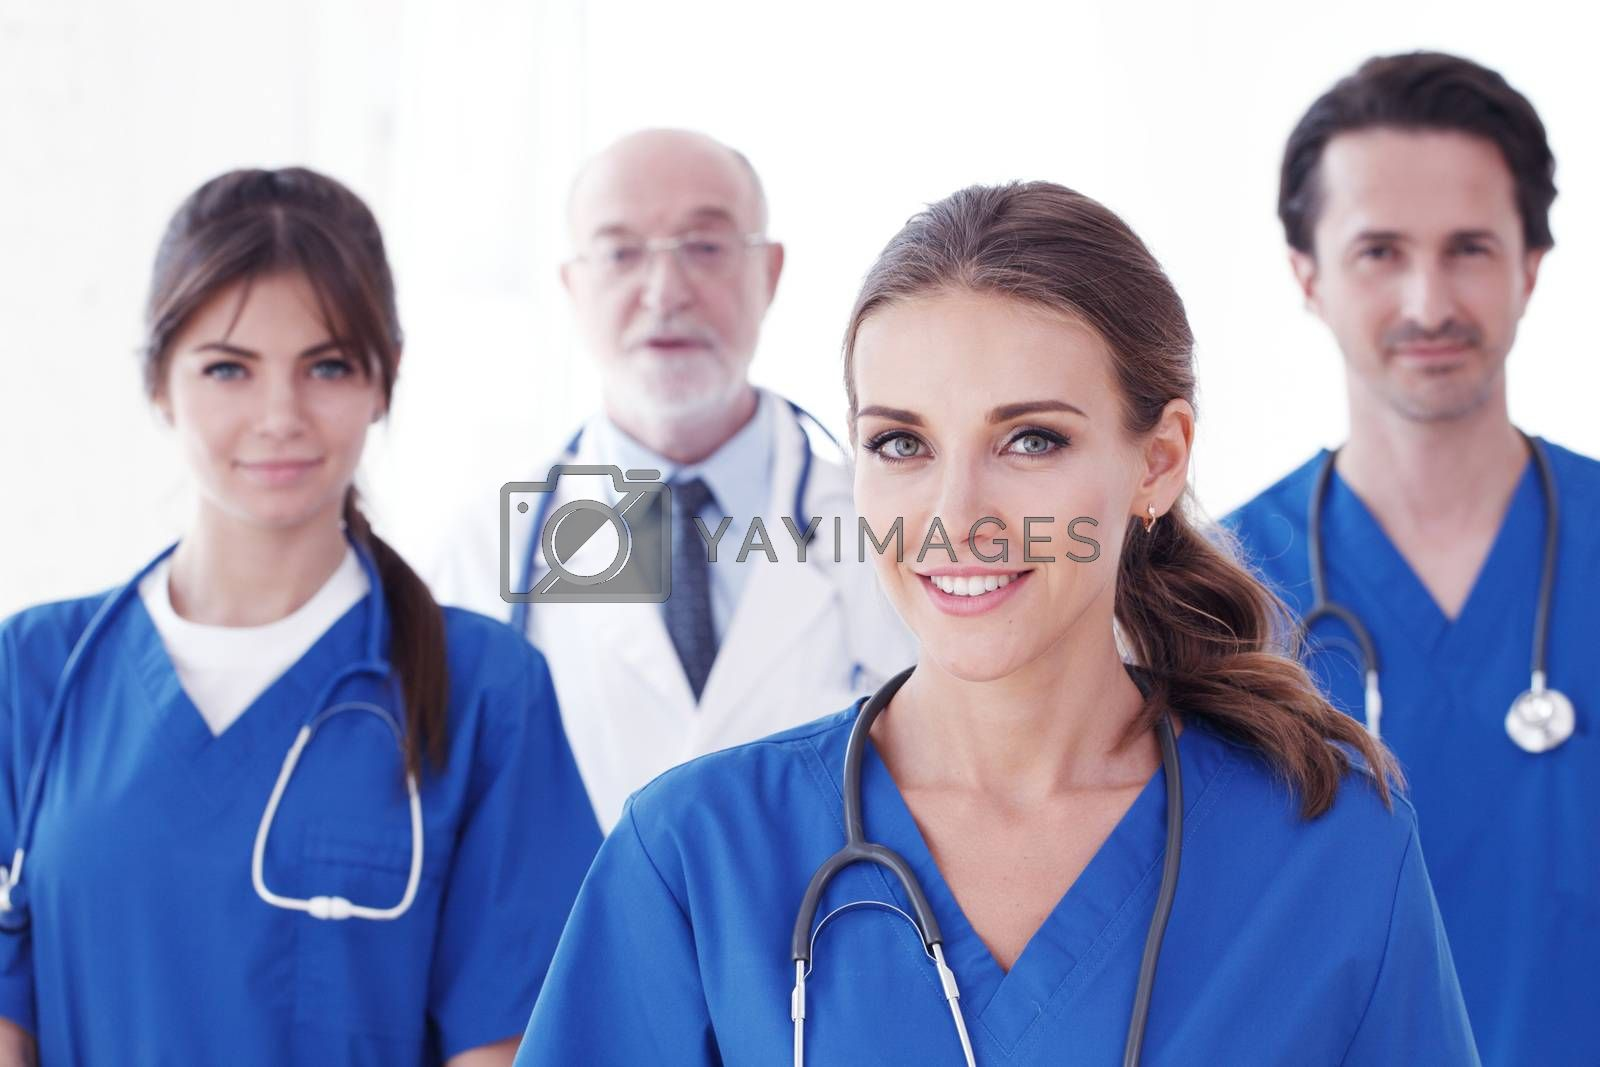 Team of professional doctors in blue uniform isolated on white background